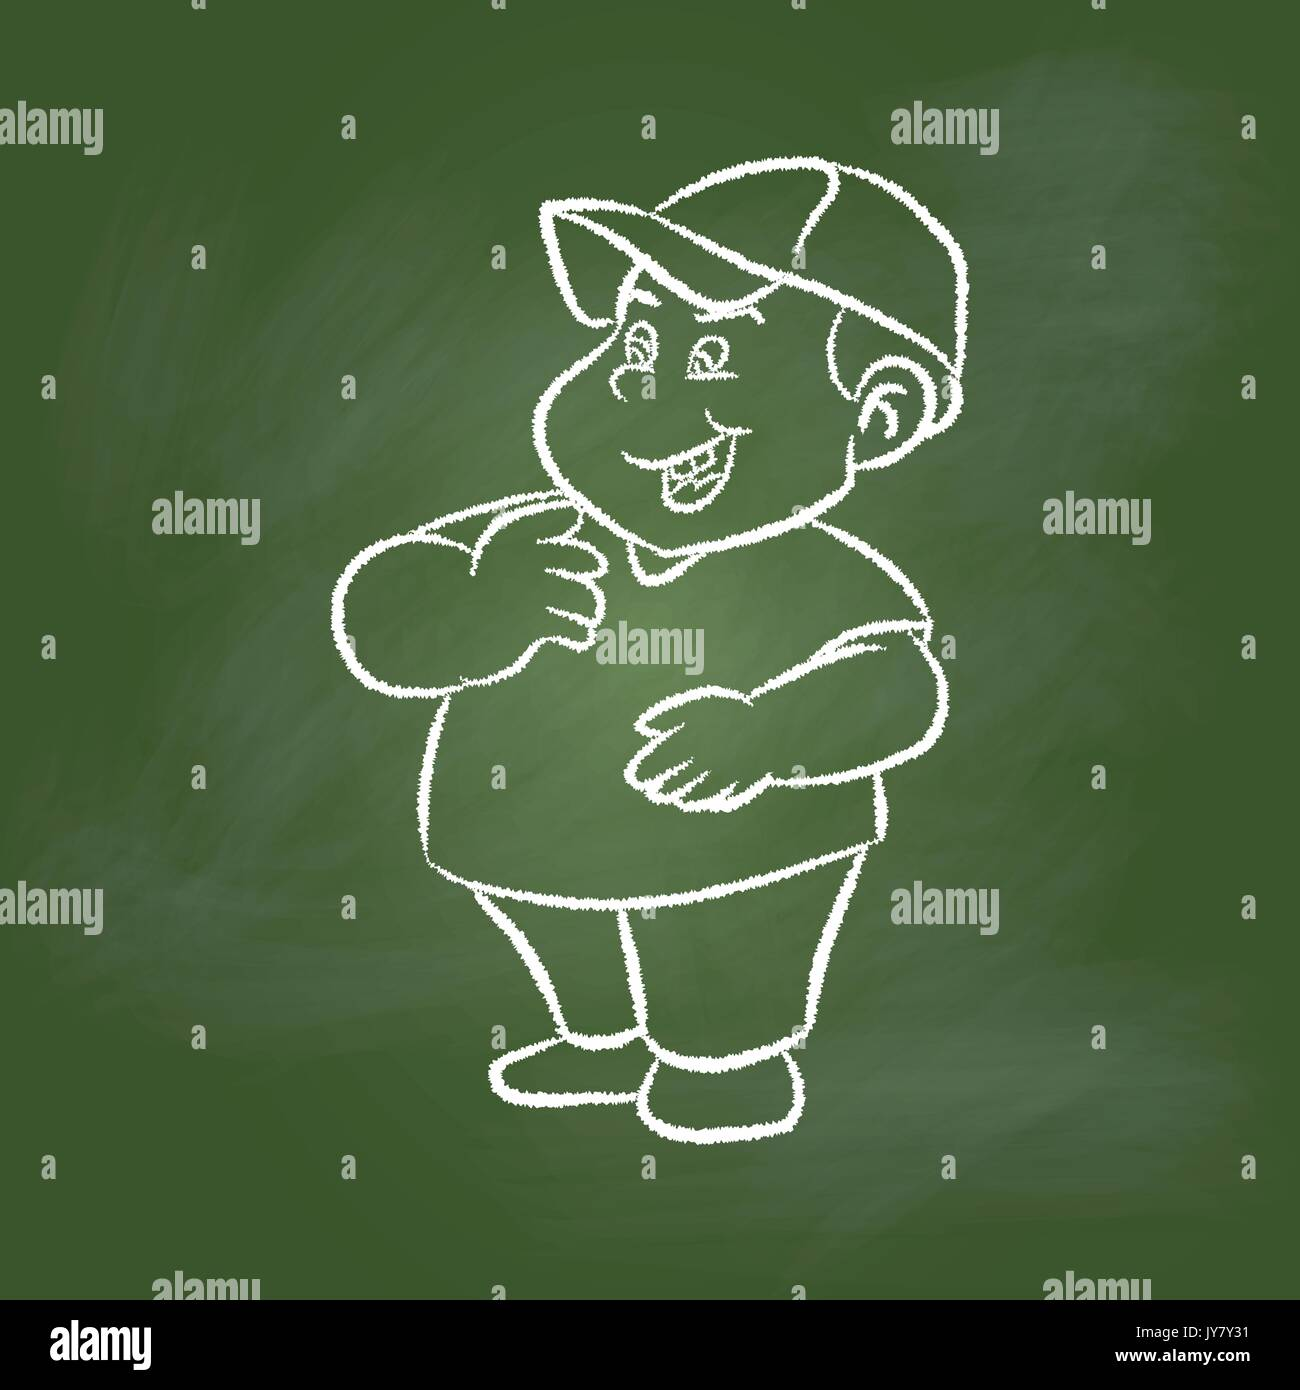 Hand Drawing Of A Fat Boy On Textured Green Board Education Concept Vector Illustration